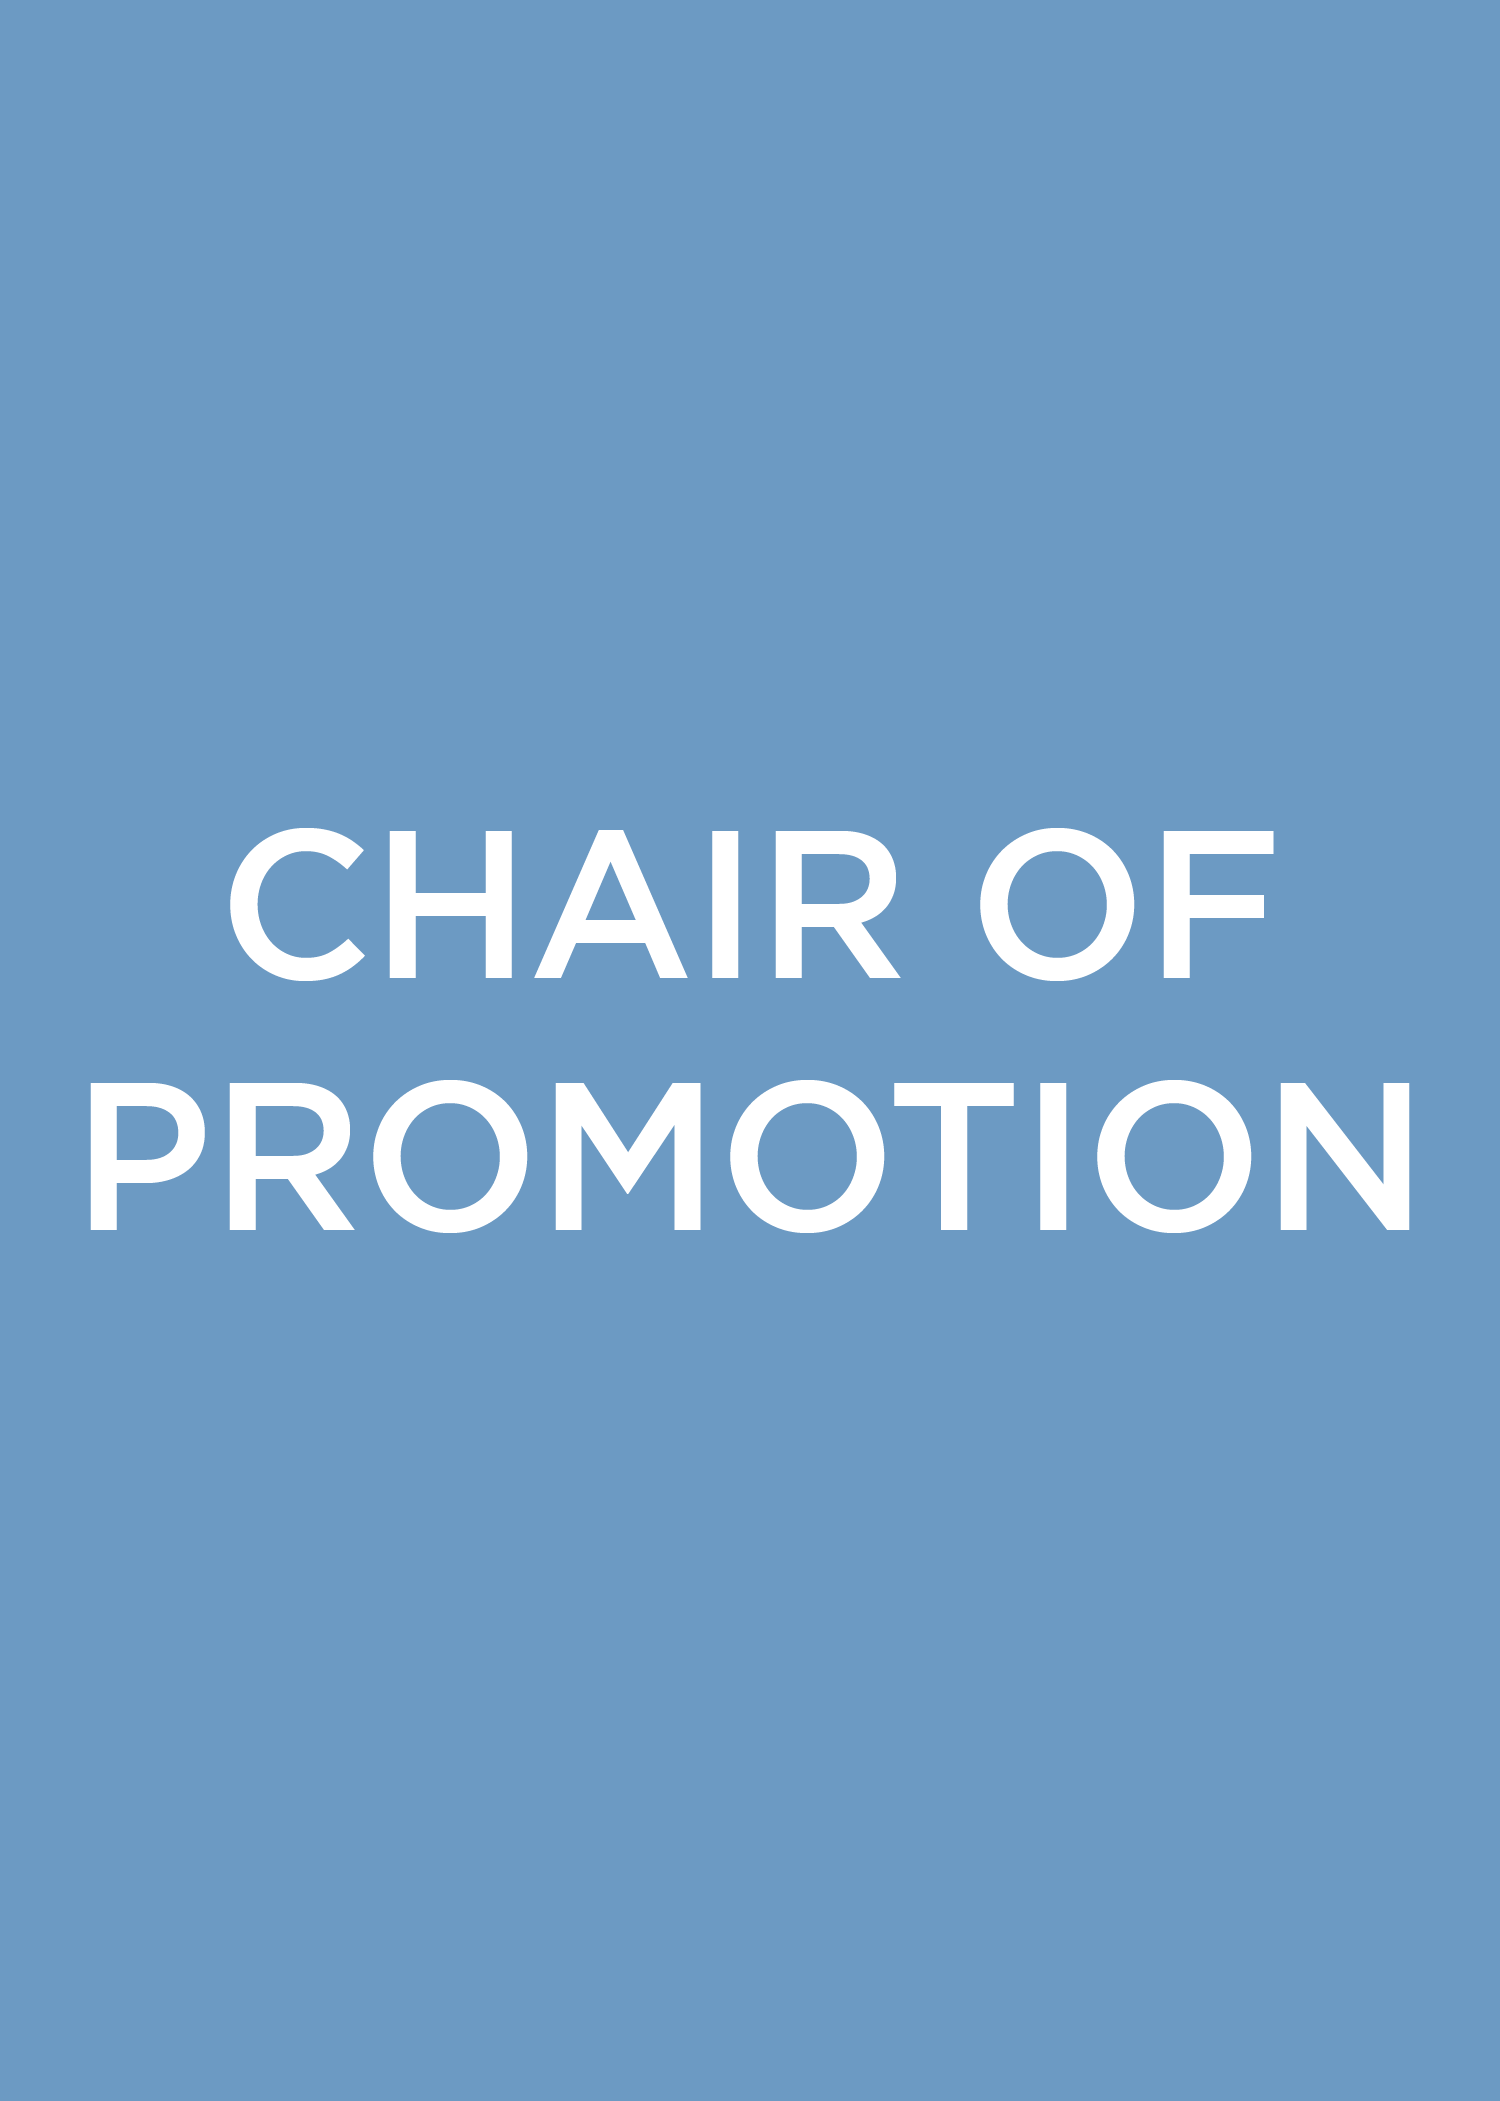 Chair of Promotion